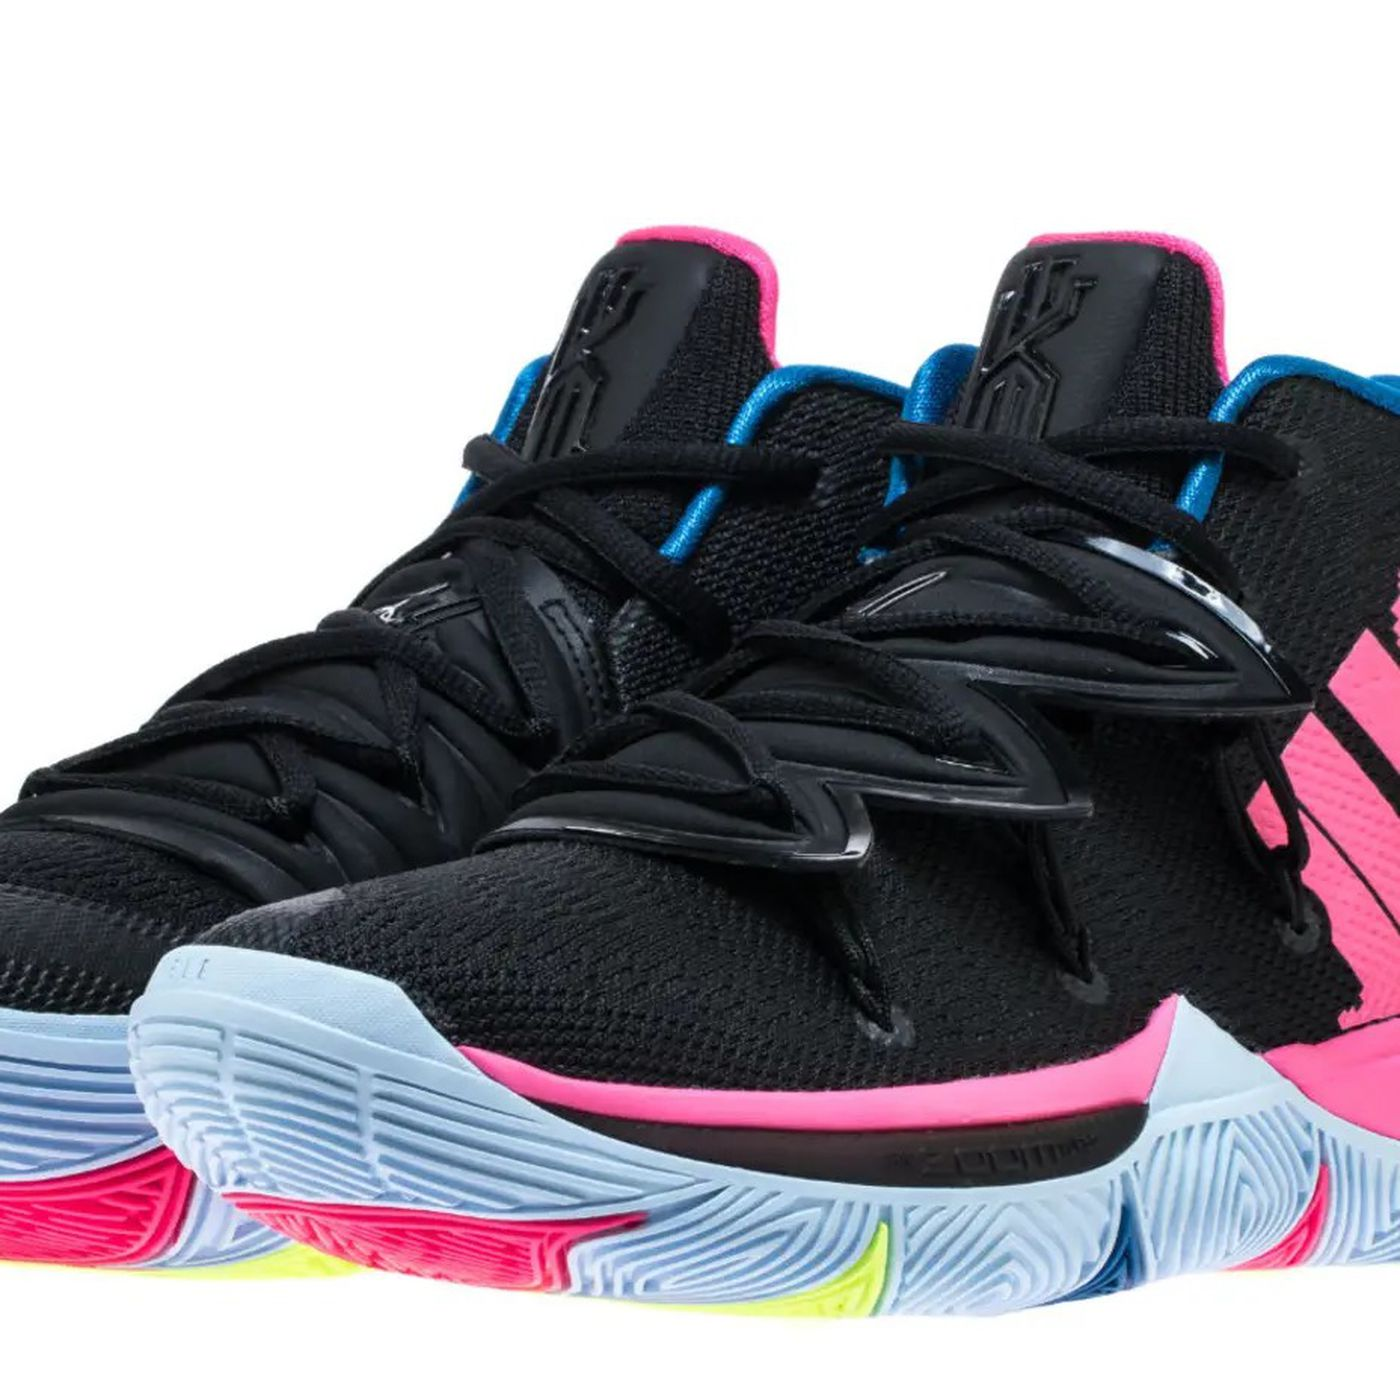 912ebd93f7c8 The latest Nike Kyrie 5 colorway is a tribute to  Just Do It ...